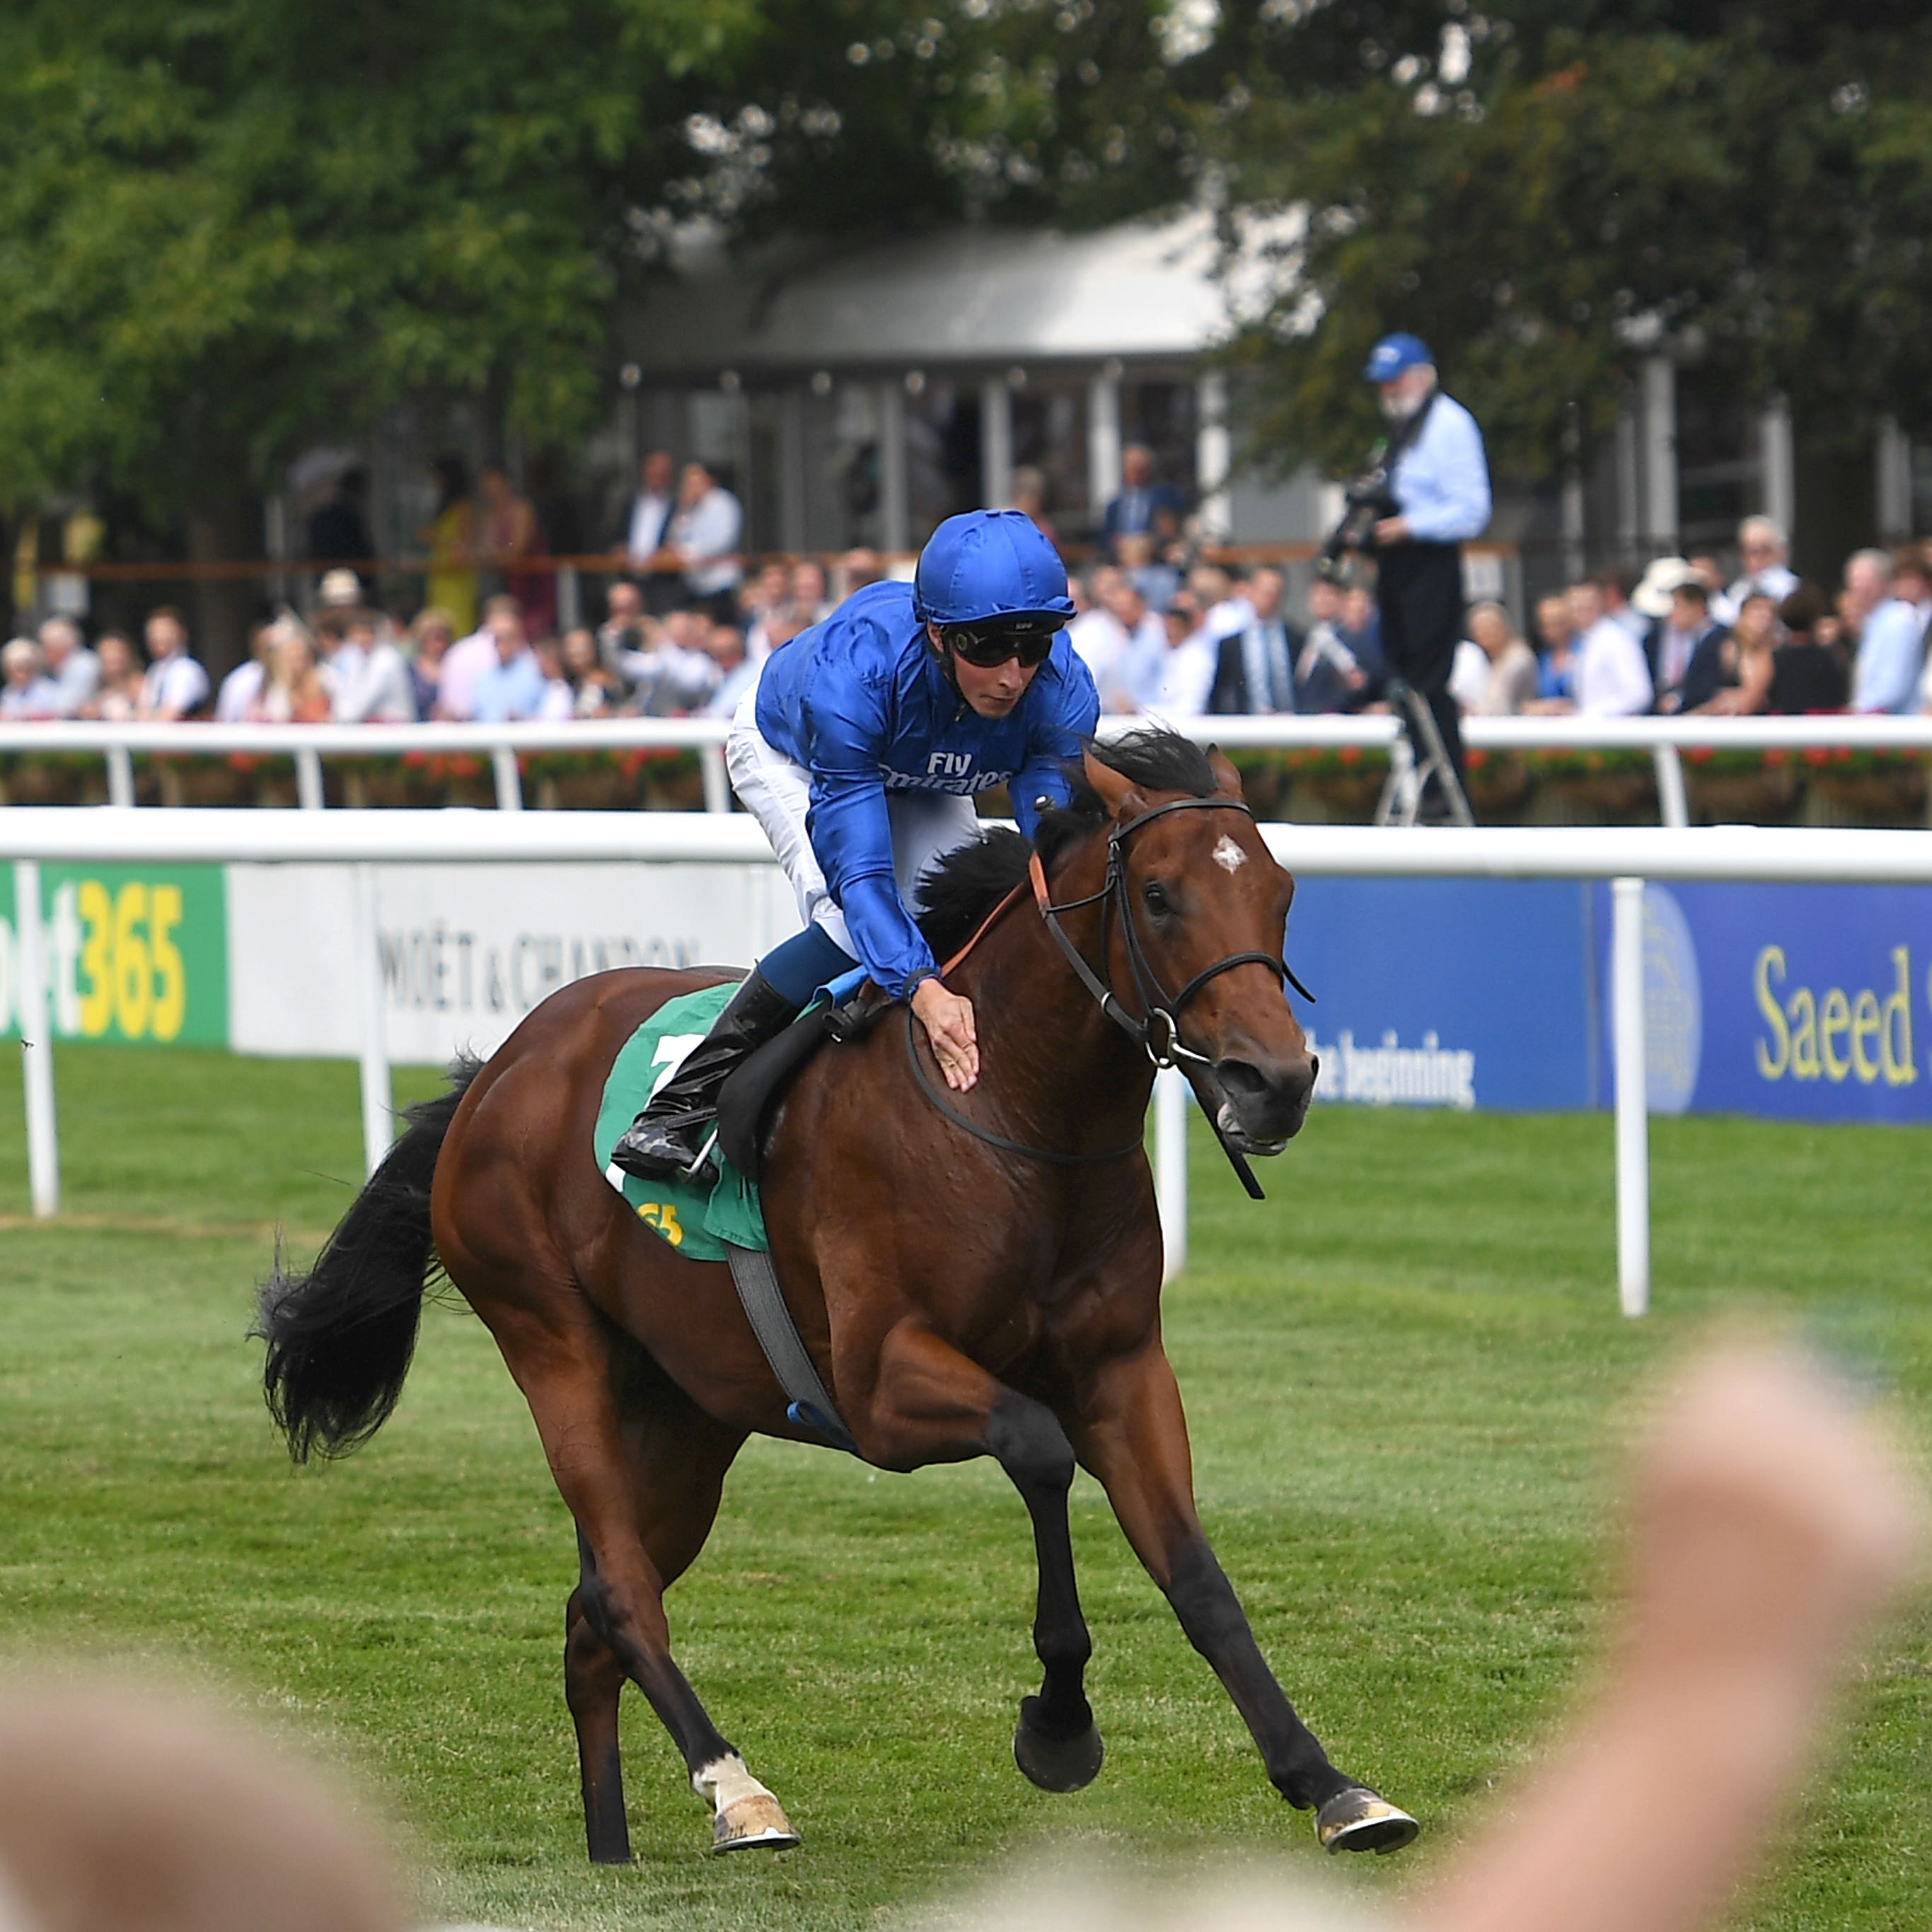 Quorto was an impressive winner of the Superlative Stakes at Newmarket